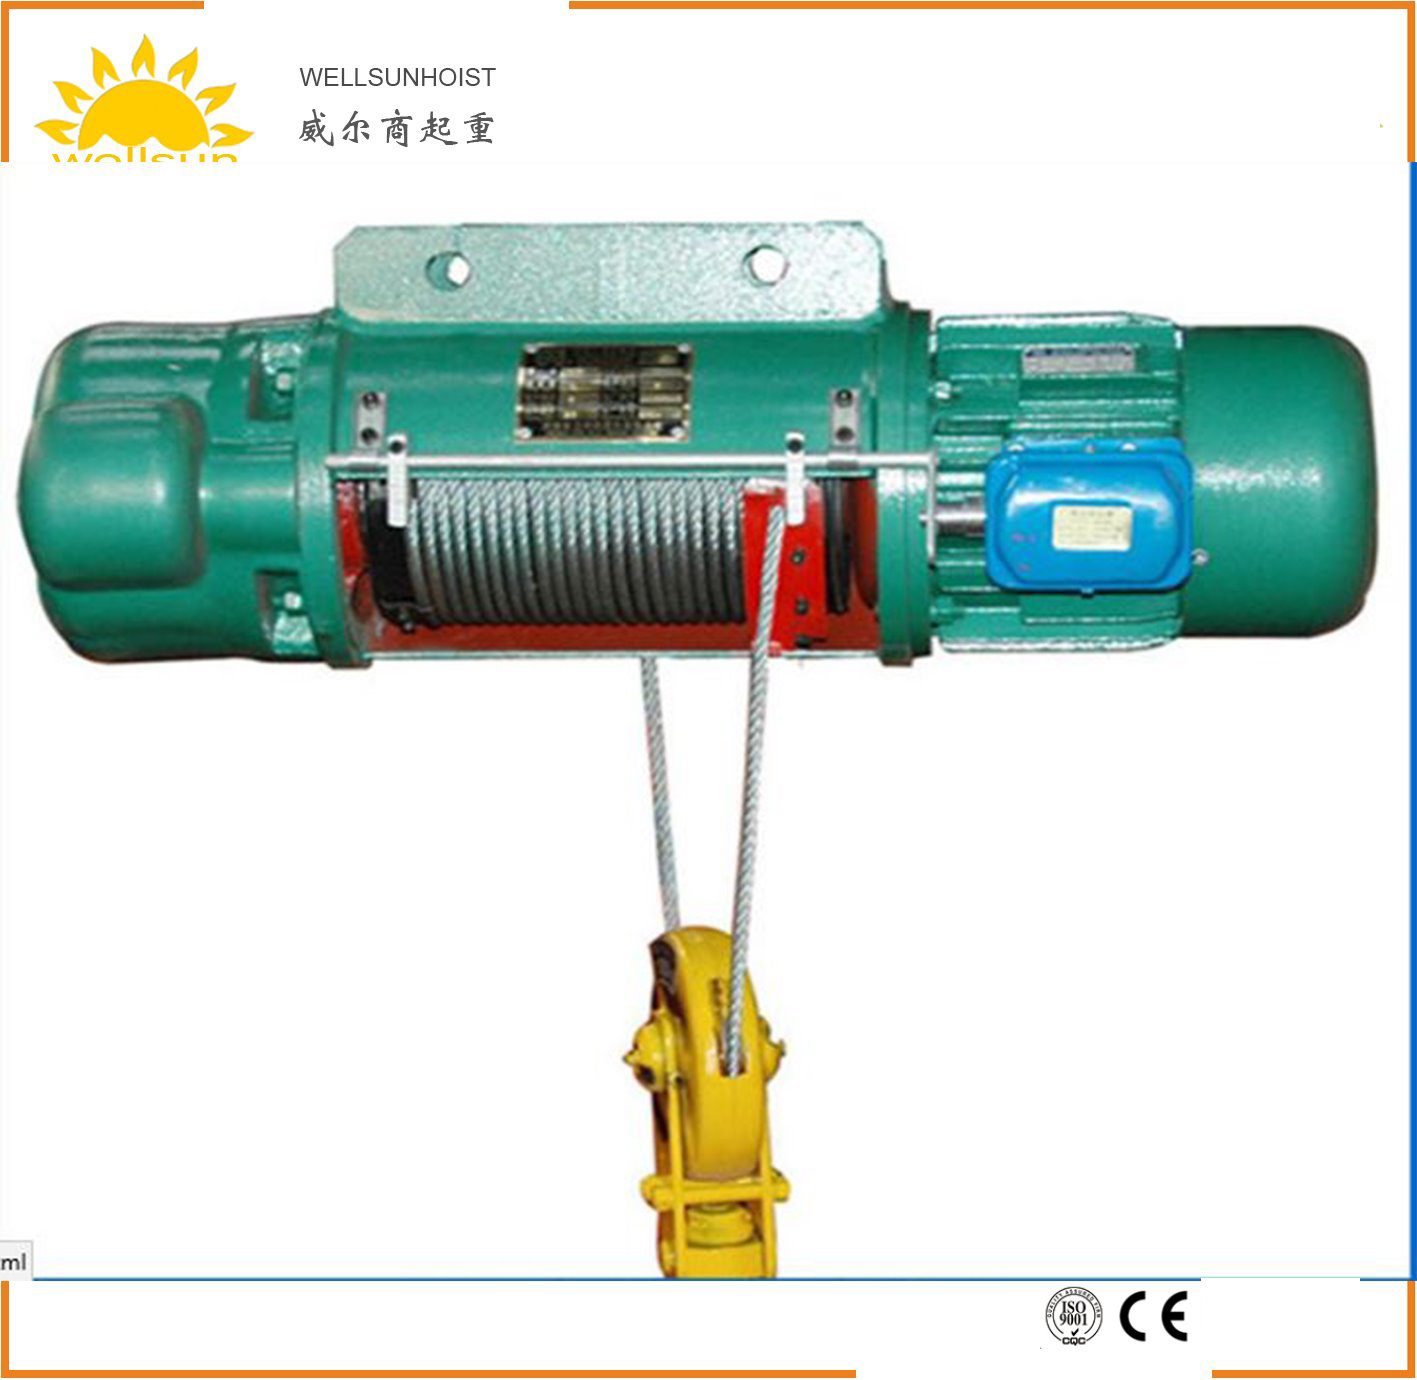 China OEM, Fixed Mode CD1 & MD1 Electric Wire Rope Hoist ...